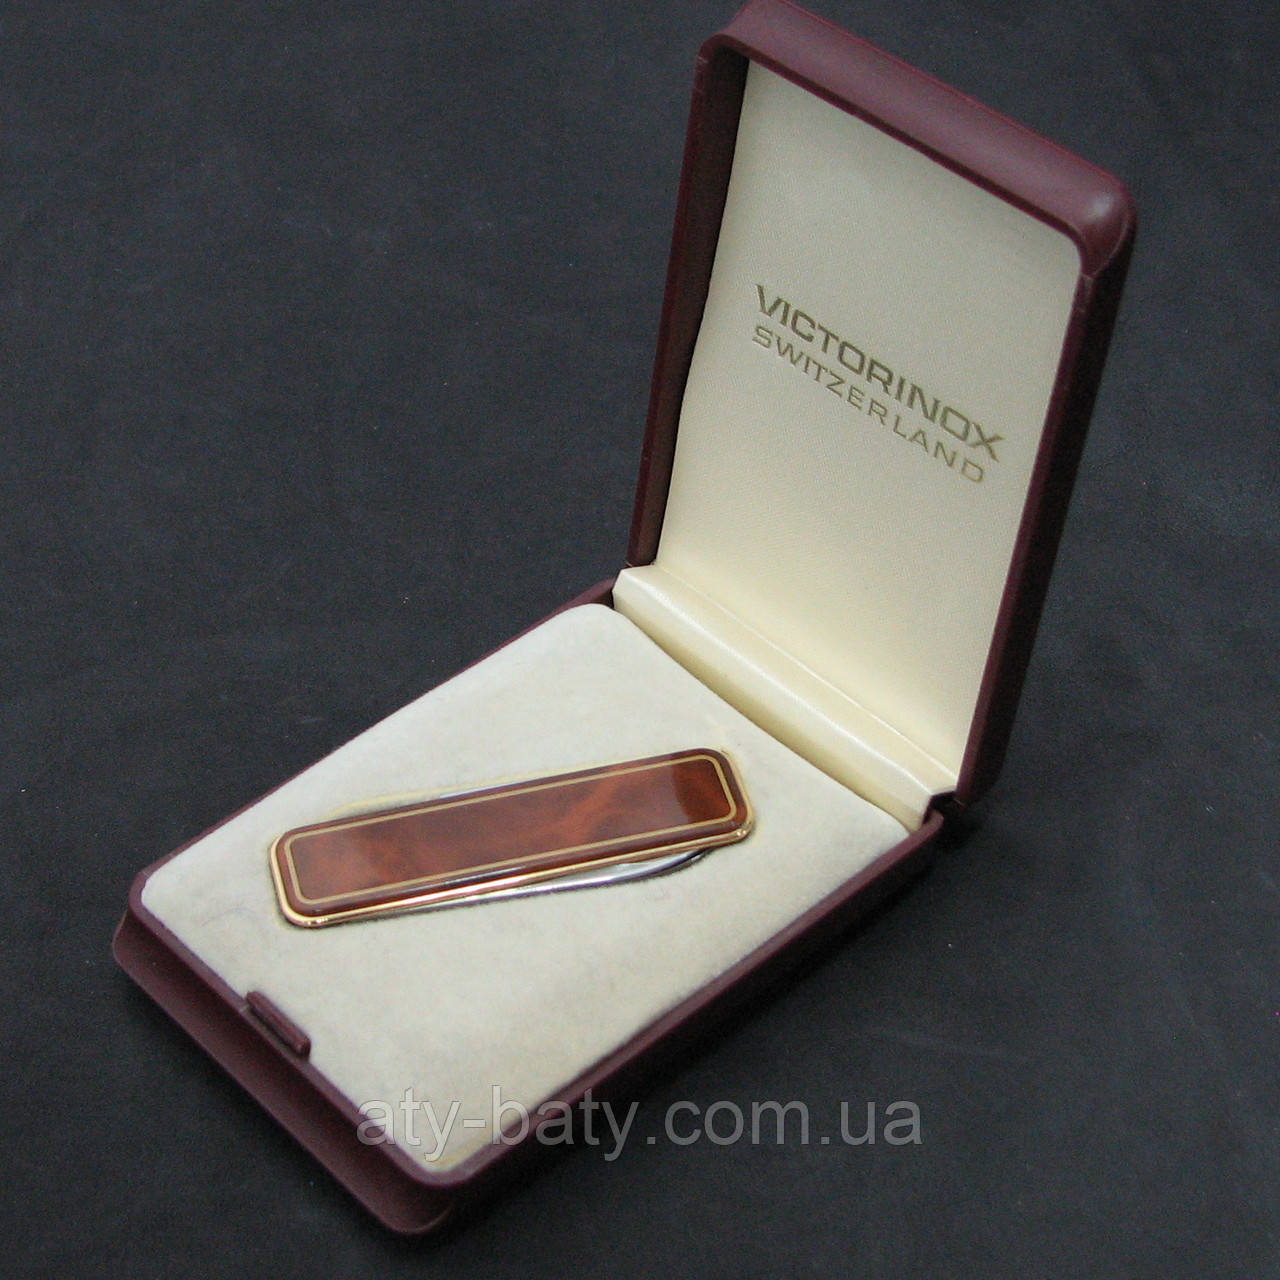 Нож Victorinox Enamelled Brown Marble 0.6210.86